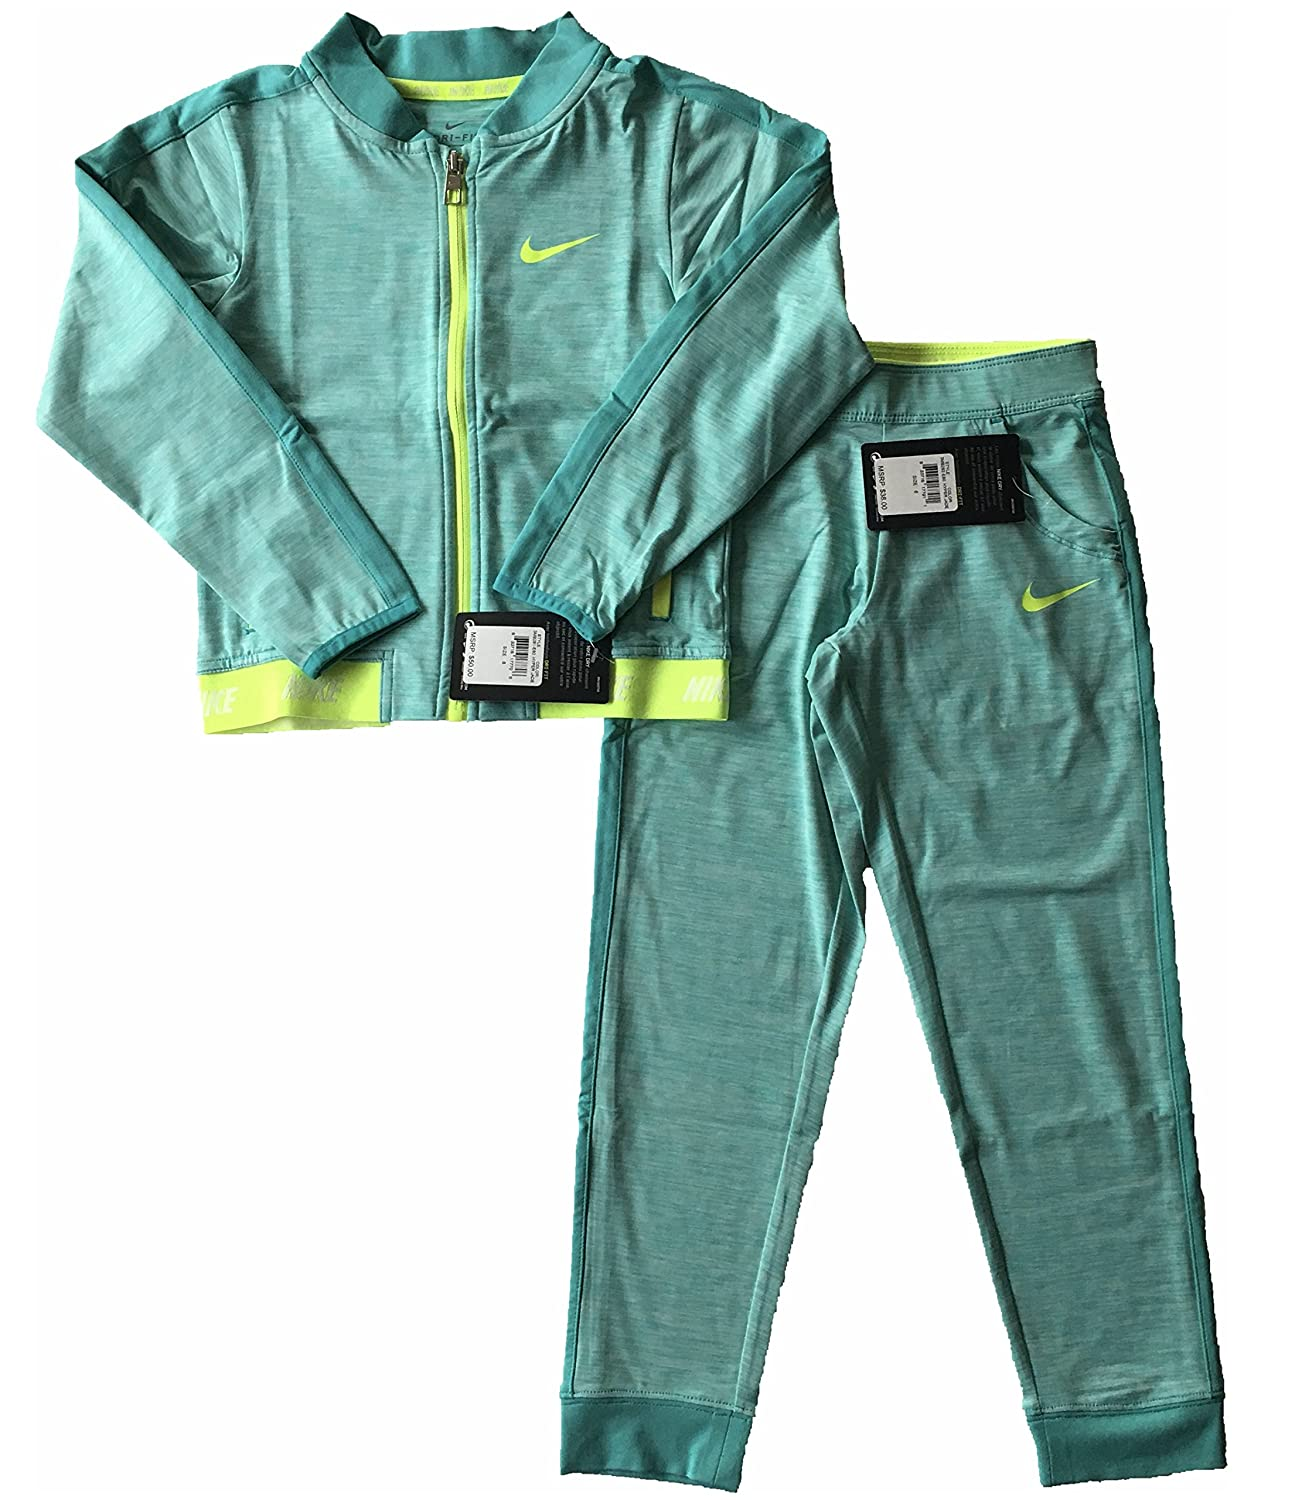 Nike Girls 2 Piece Full-Zip Active Jacket and Pants Size 6 Green